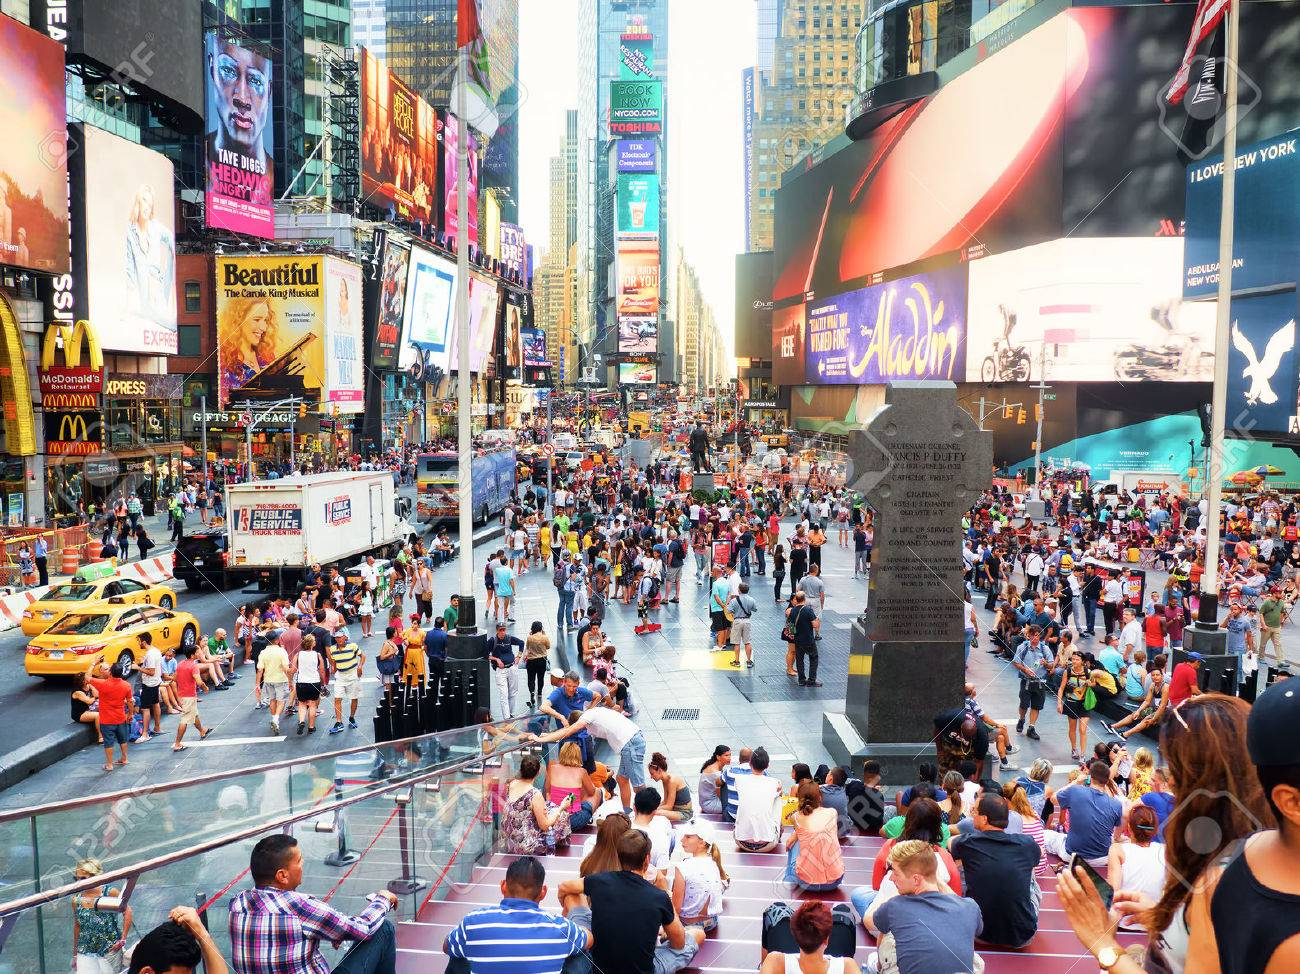 Tourists and colorful neon billboards at Times Square in New York City - 45927082